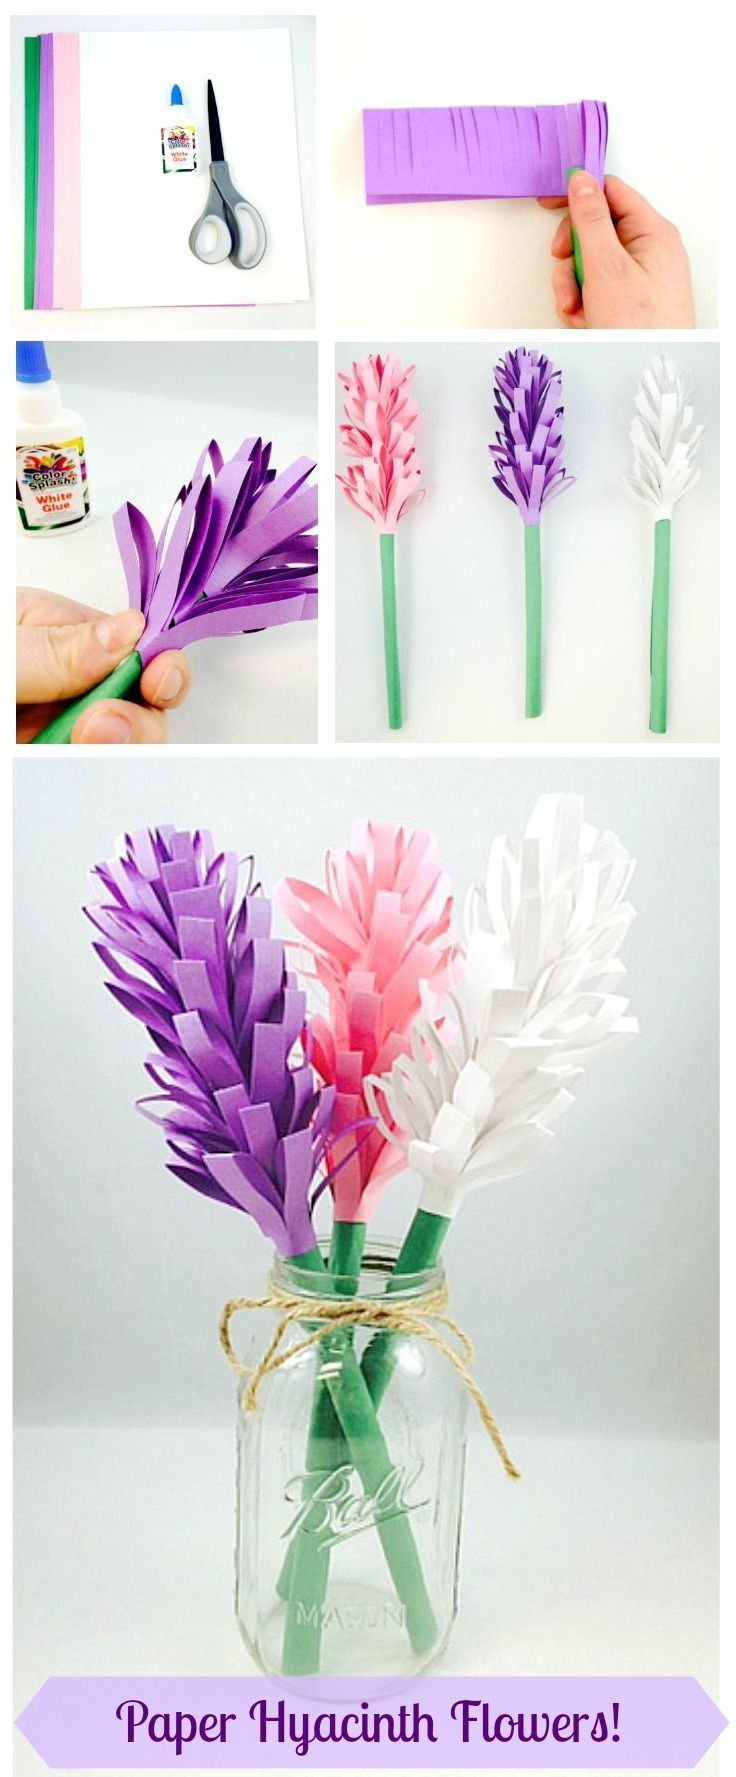 Small paper flowers craft - Easy Paper Hyacinth Flowers